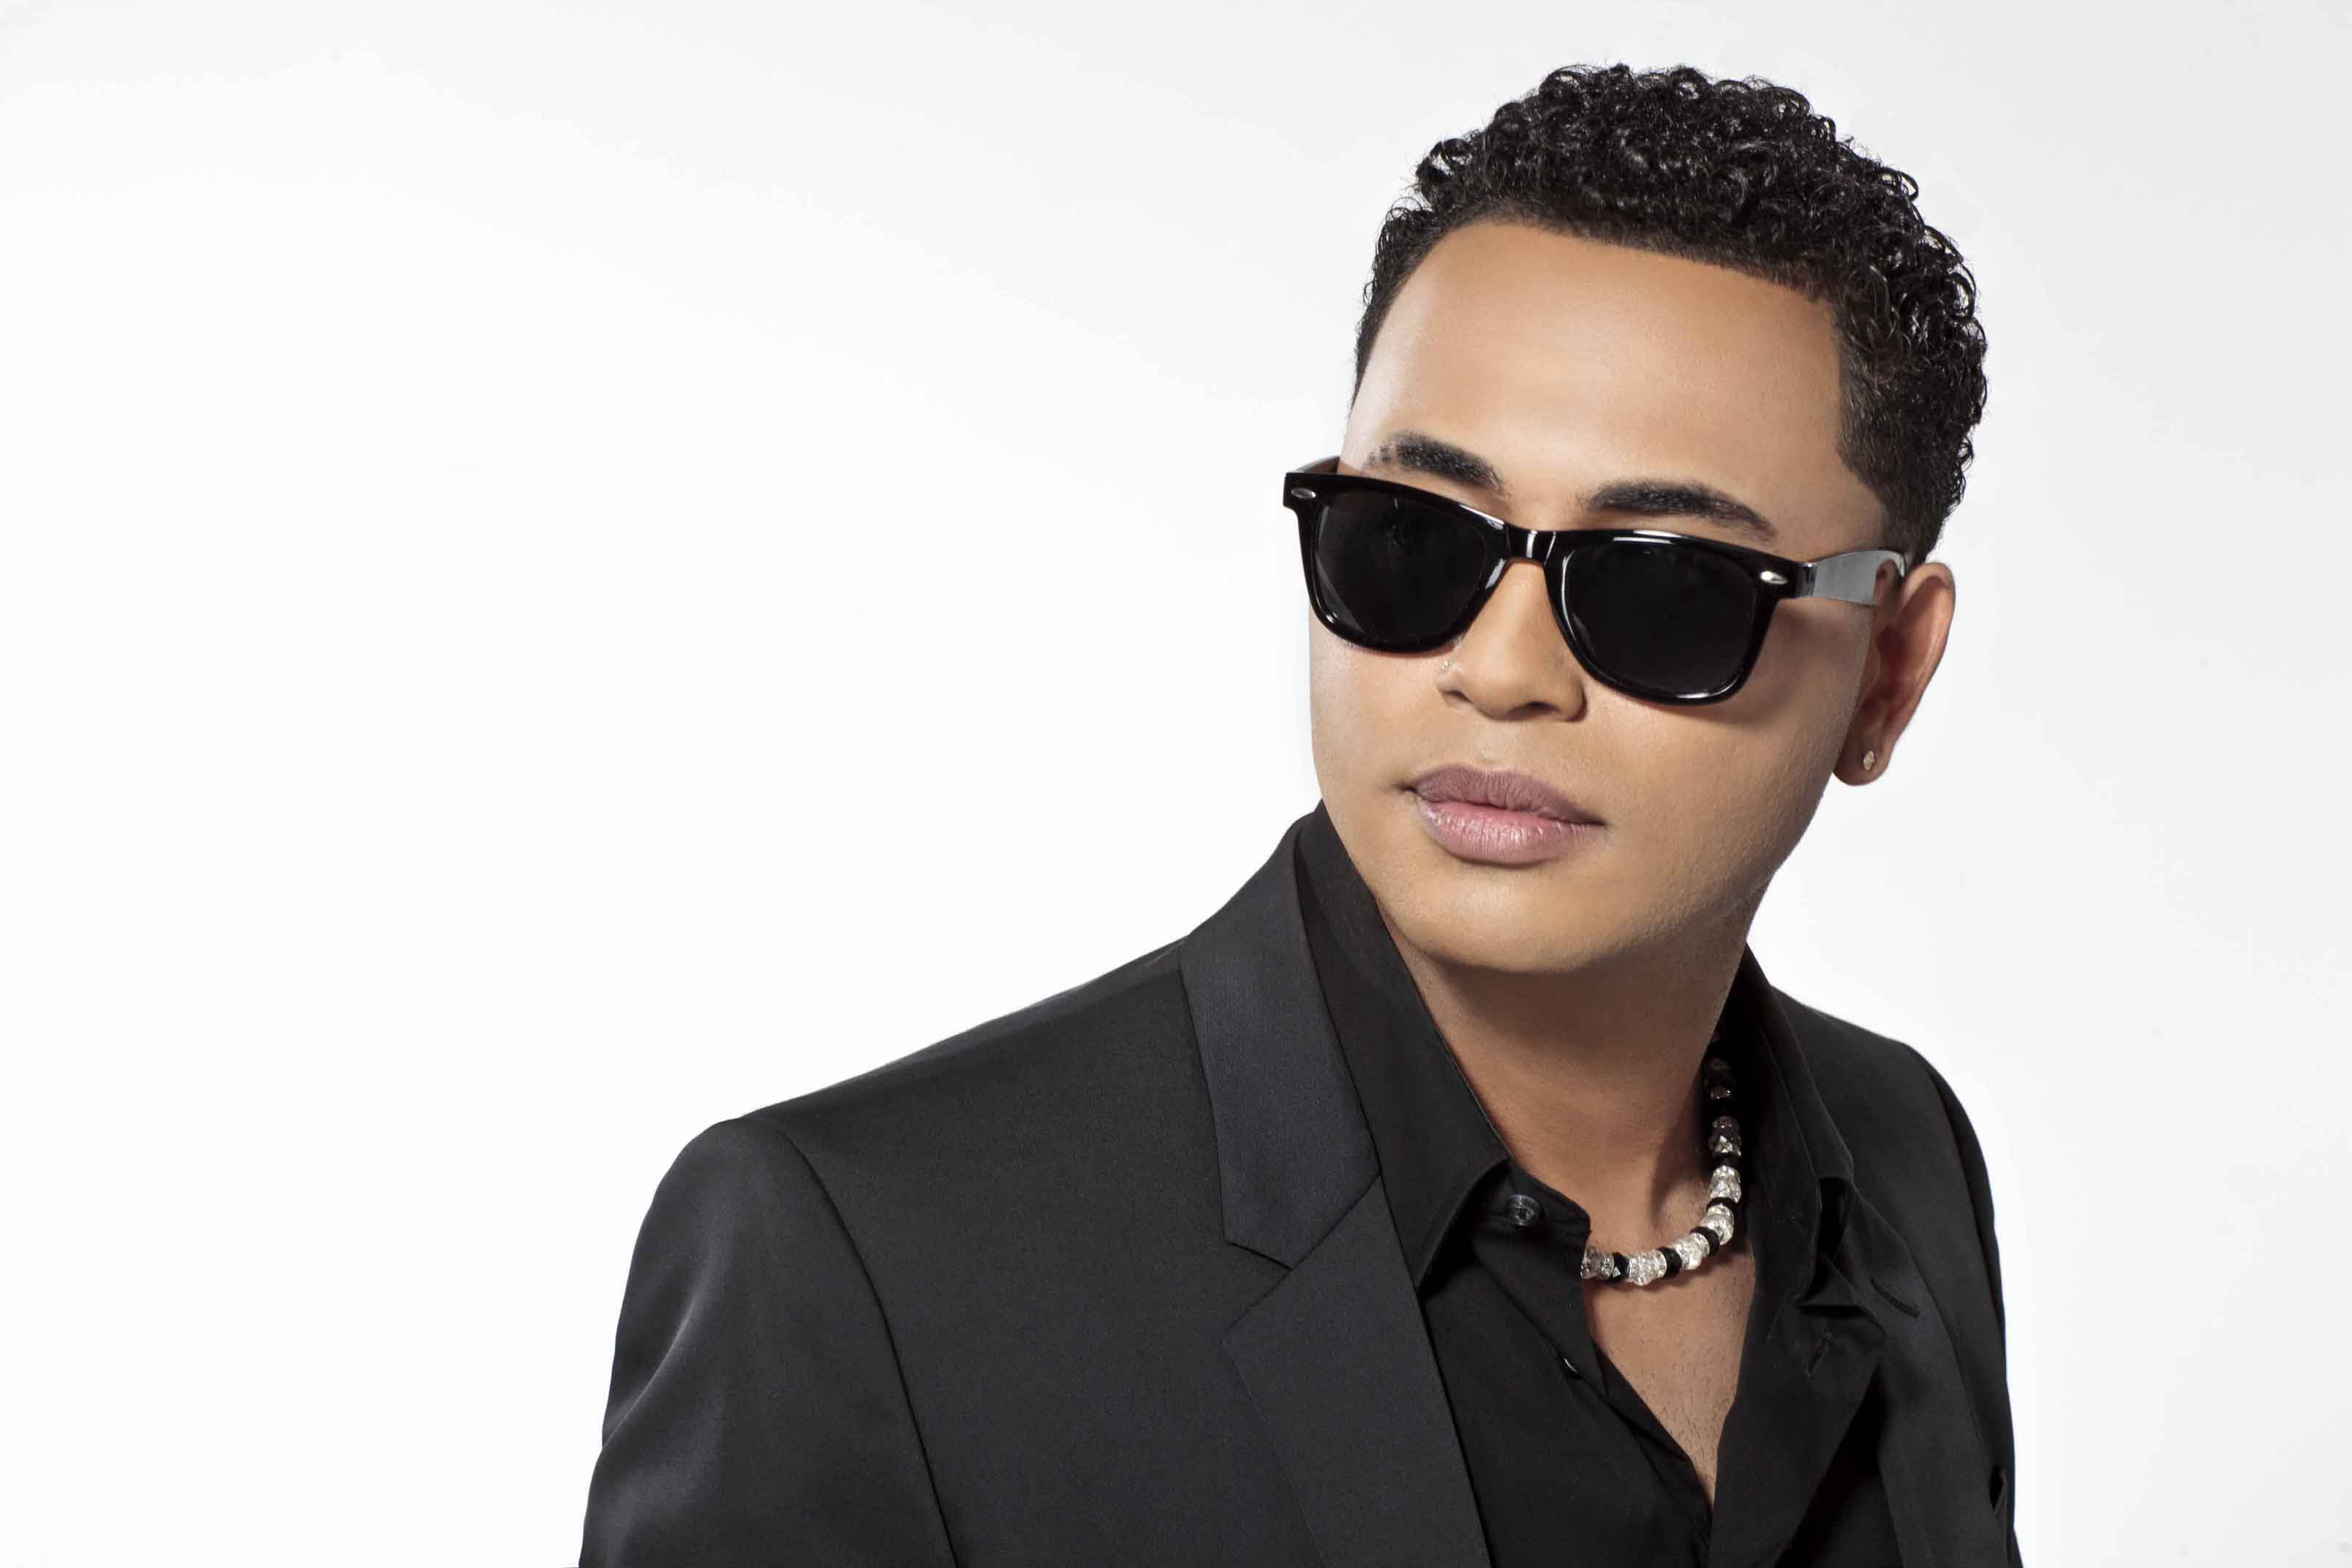 toby love bachata songs Toby love - bachataween of bachata, toby love has delivered immersed in his songs we have seen toby grow both as an individual and as an.